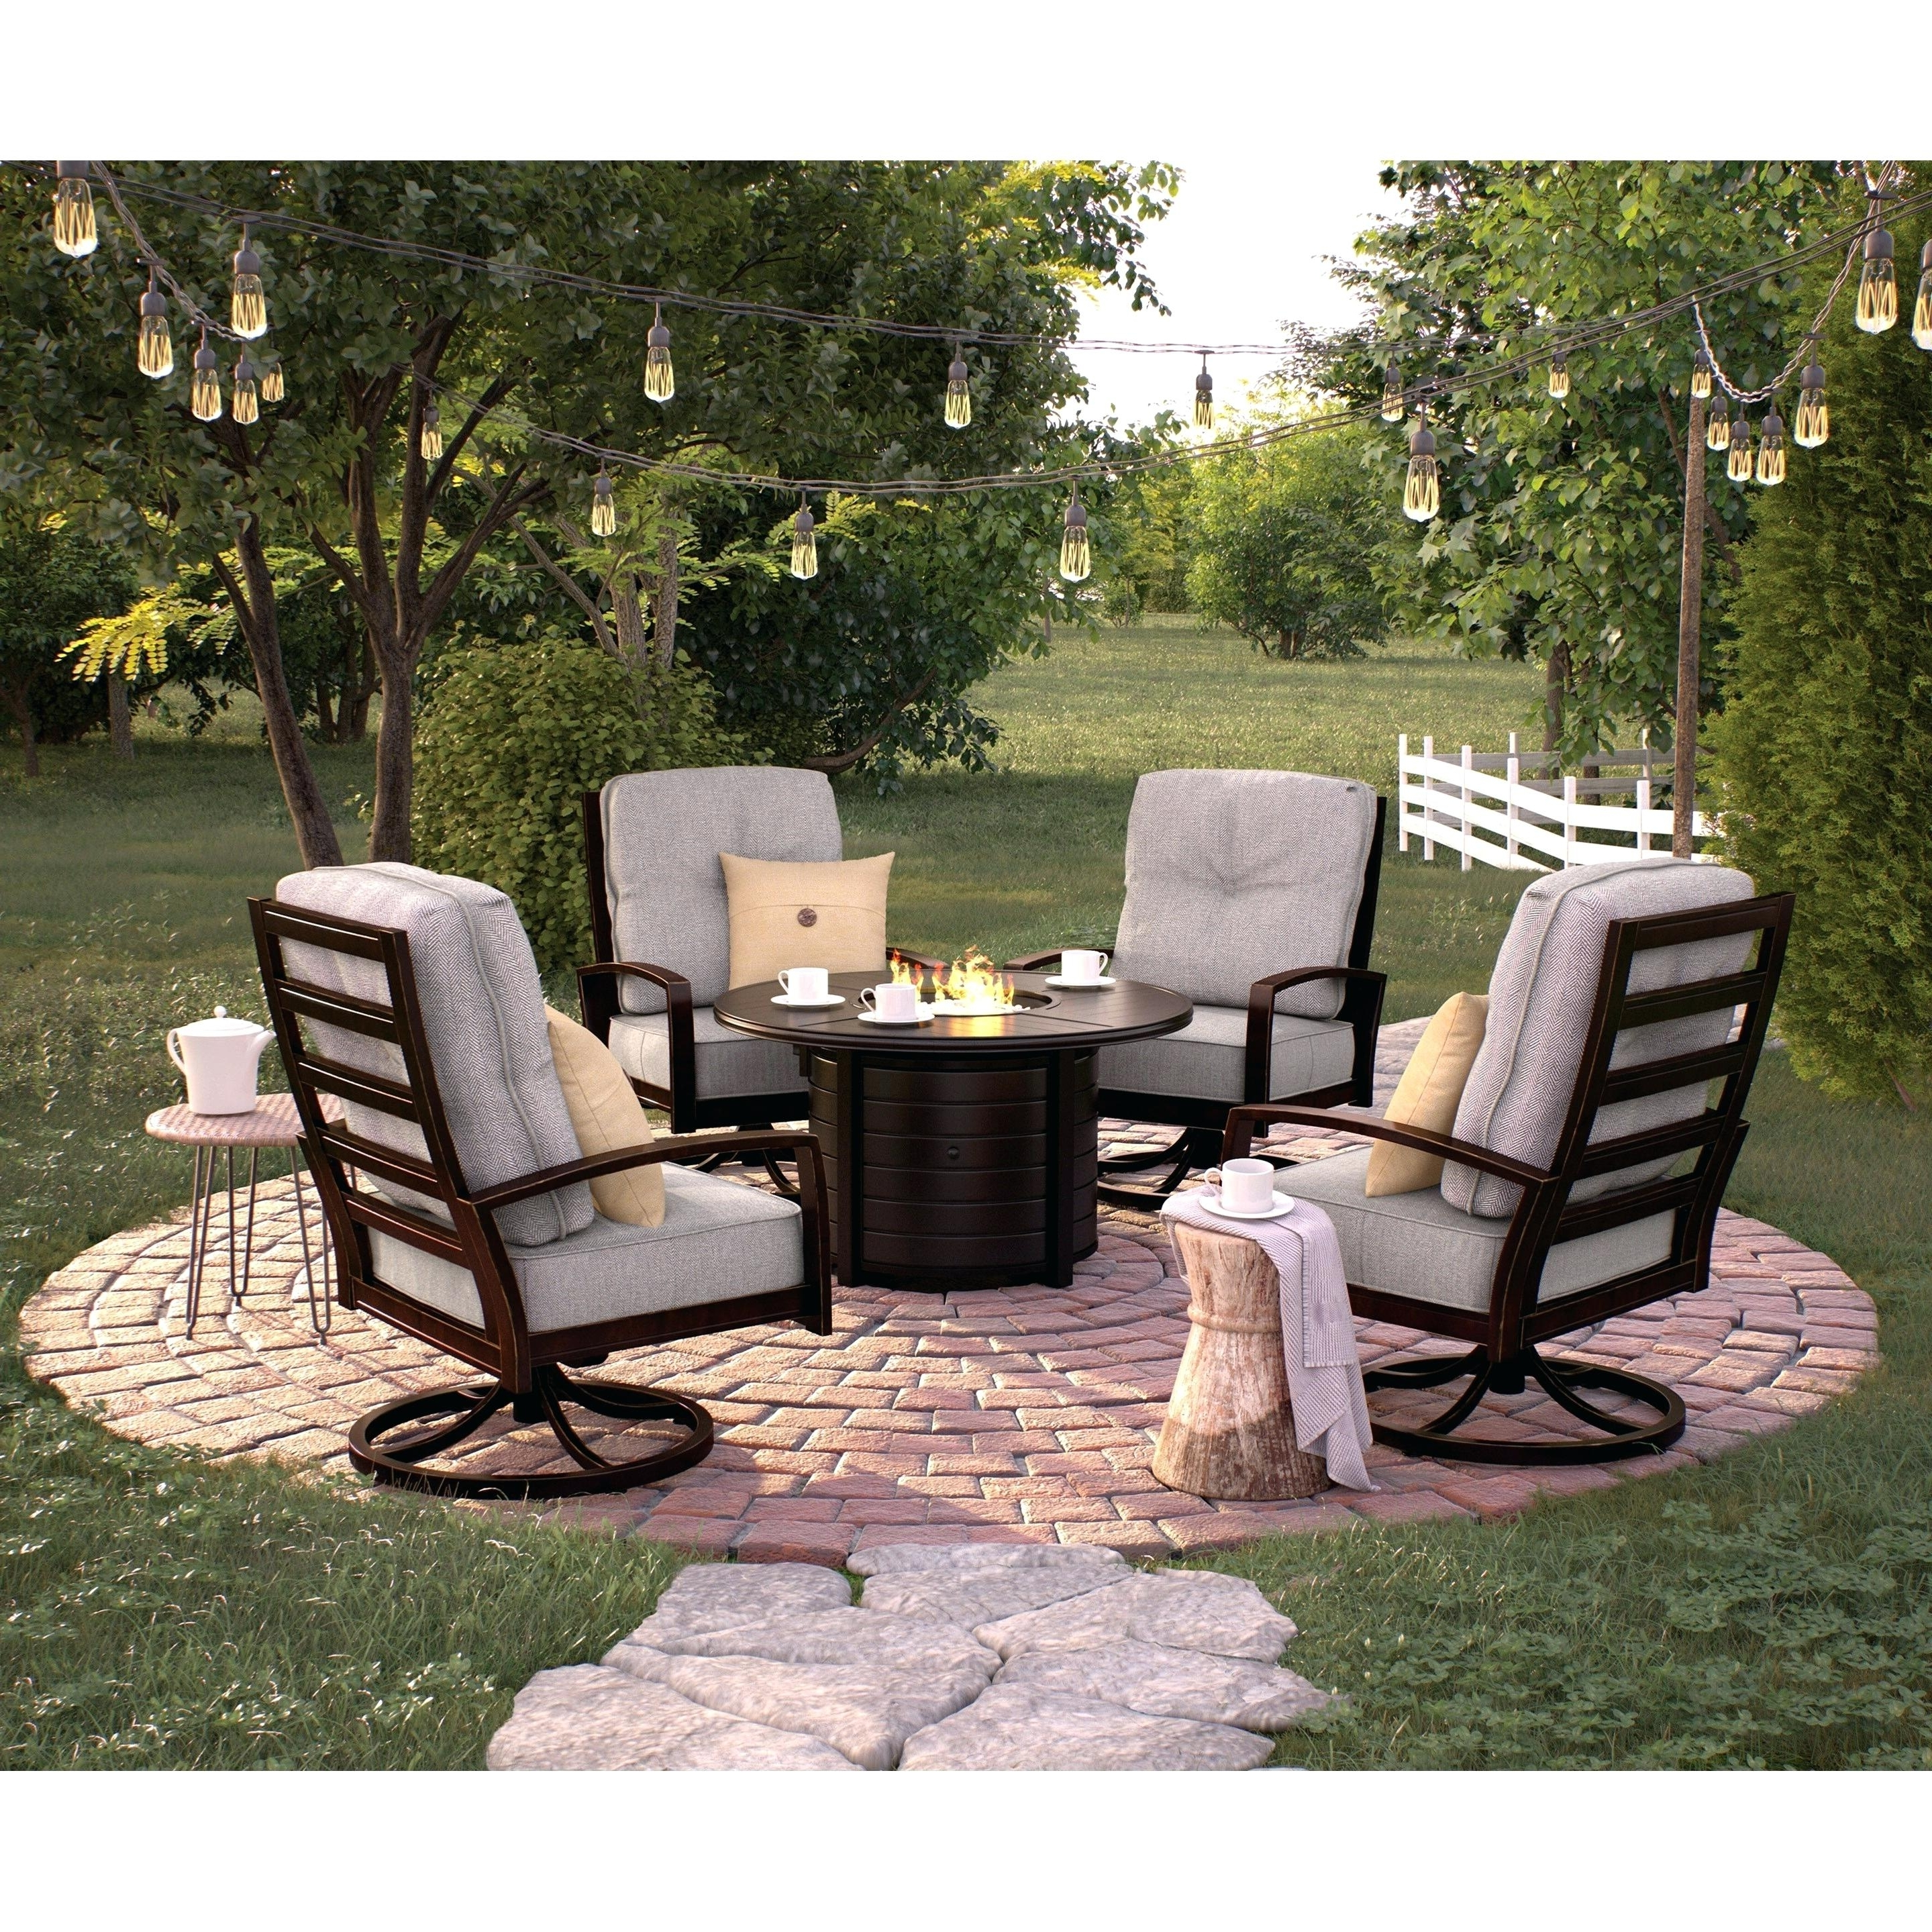 Widely Used Patio Conversation Sets At Target Pertaining To Target Patio Furniture Conversation Sets Wayfair Patio Furniture (View 19 of 20)